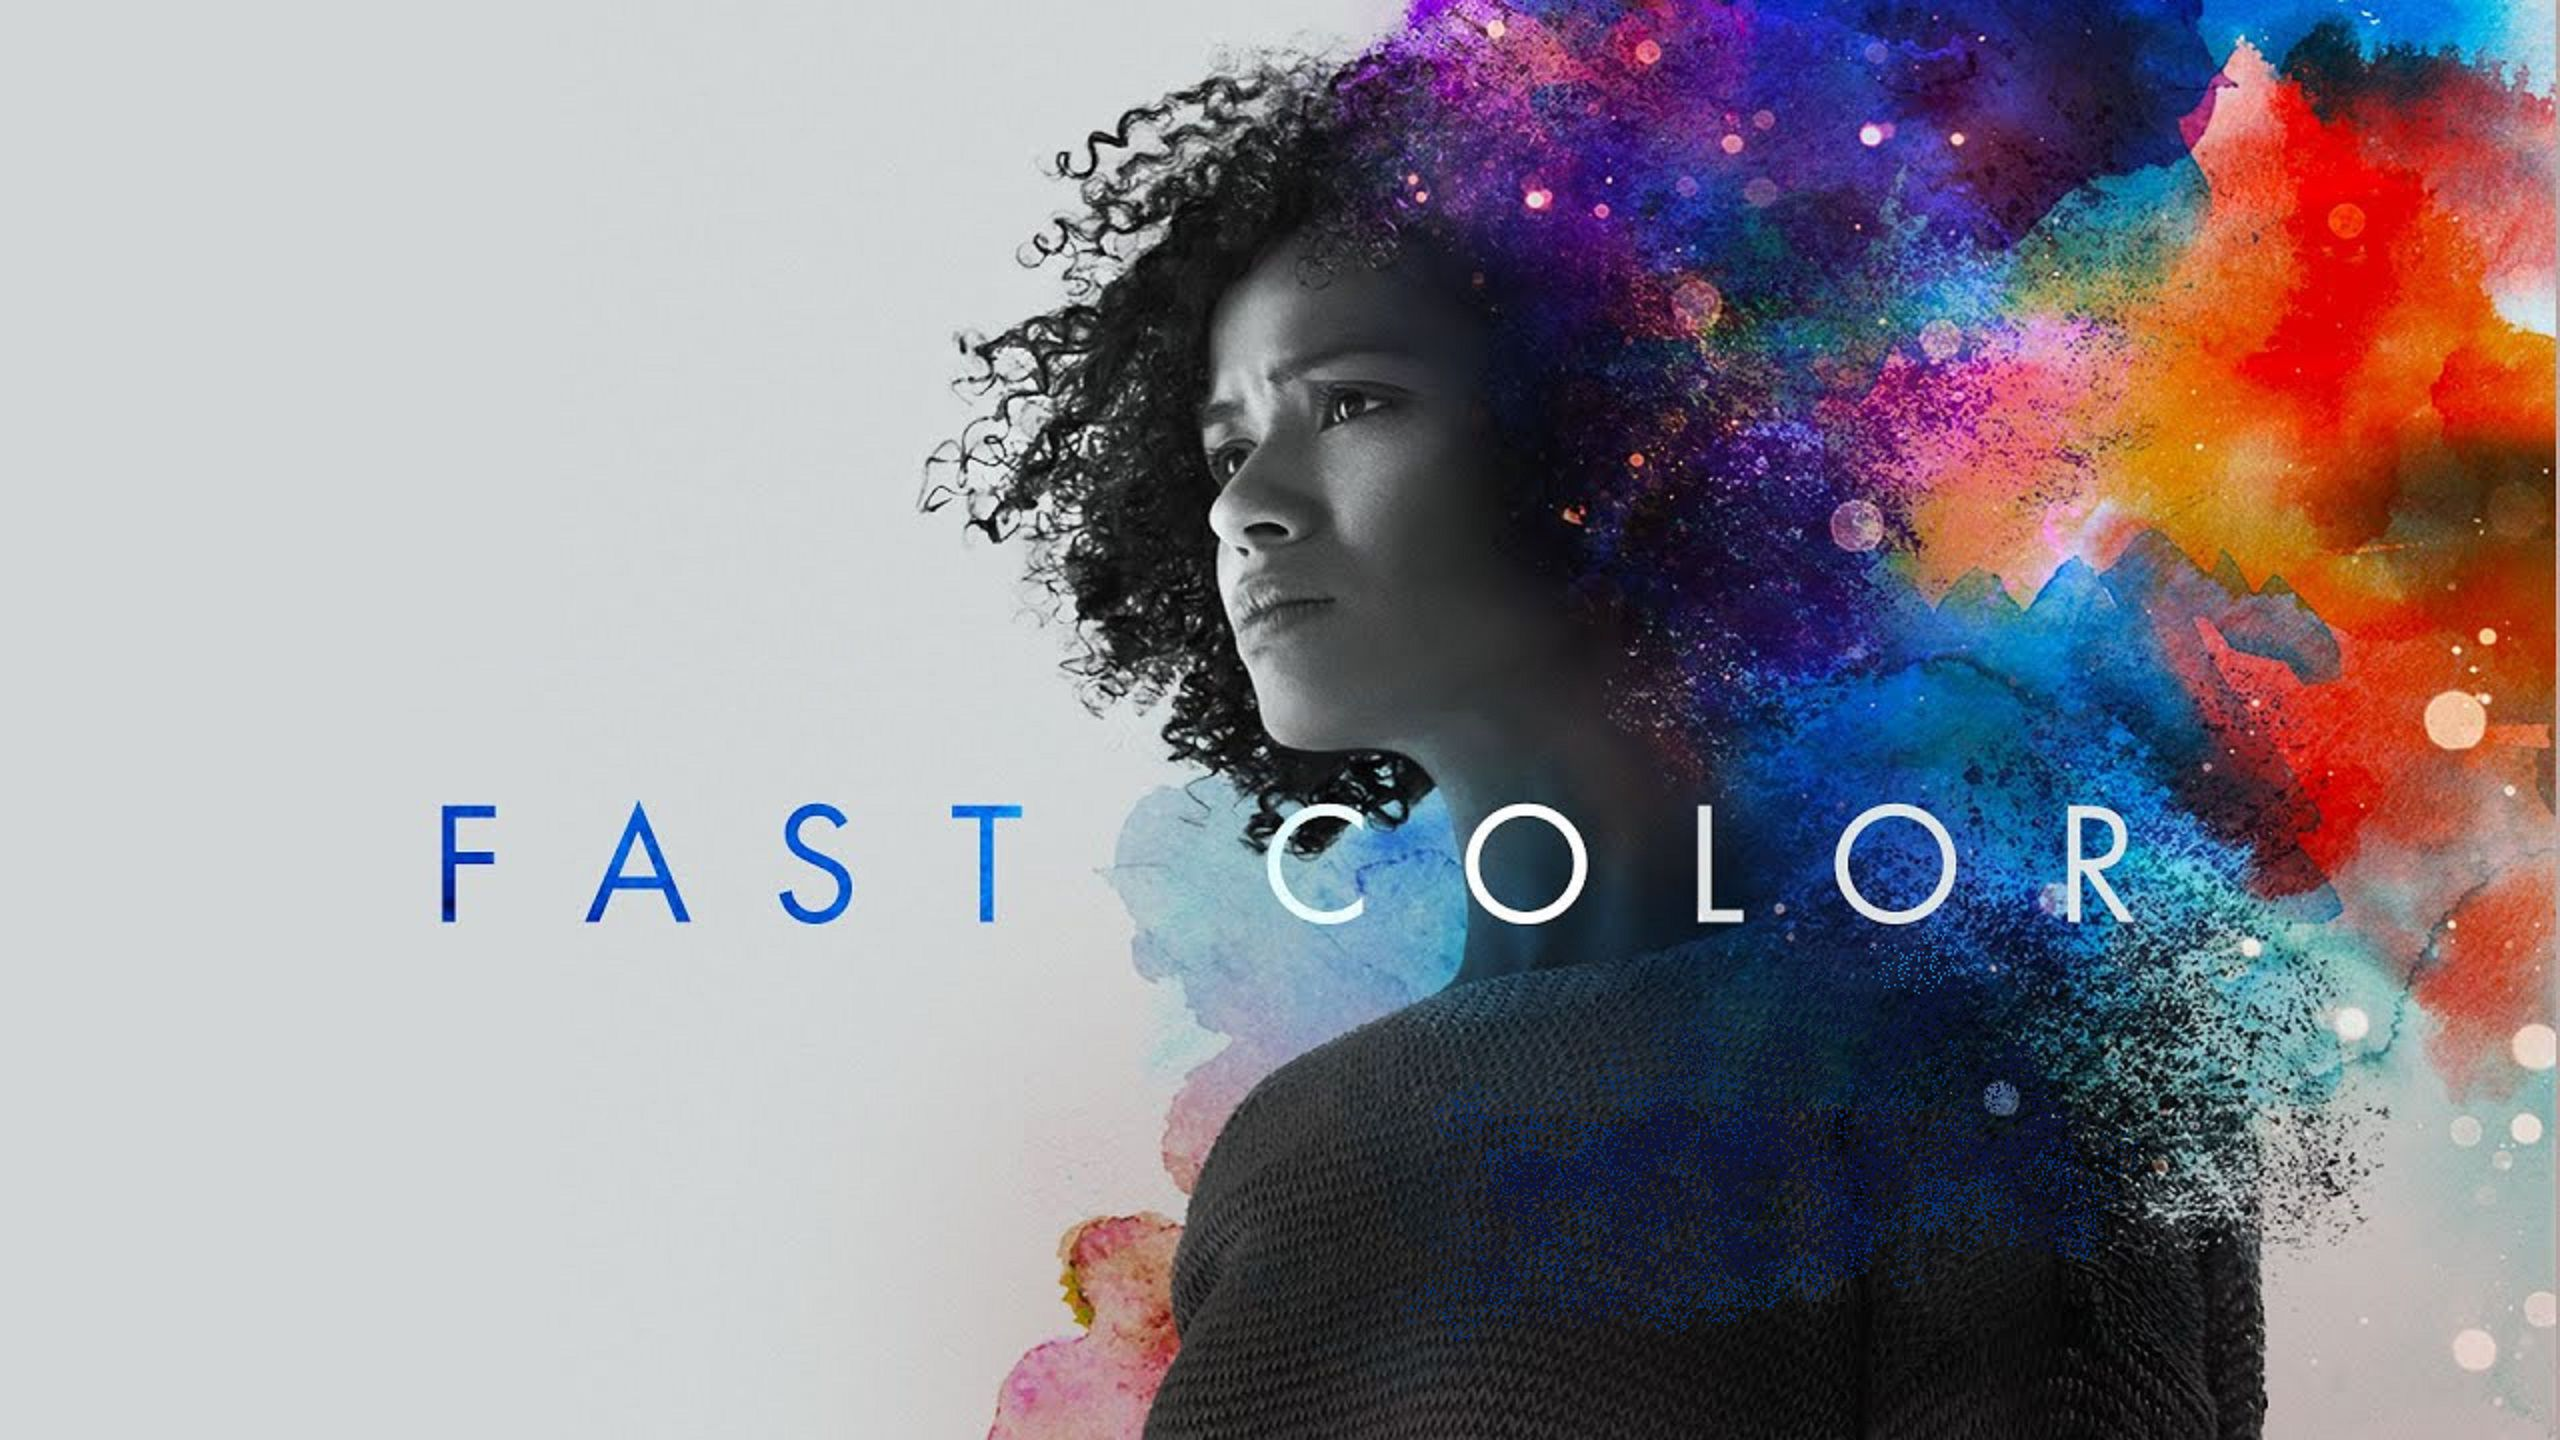 Fast Color (2019)